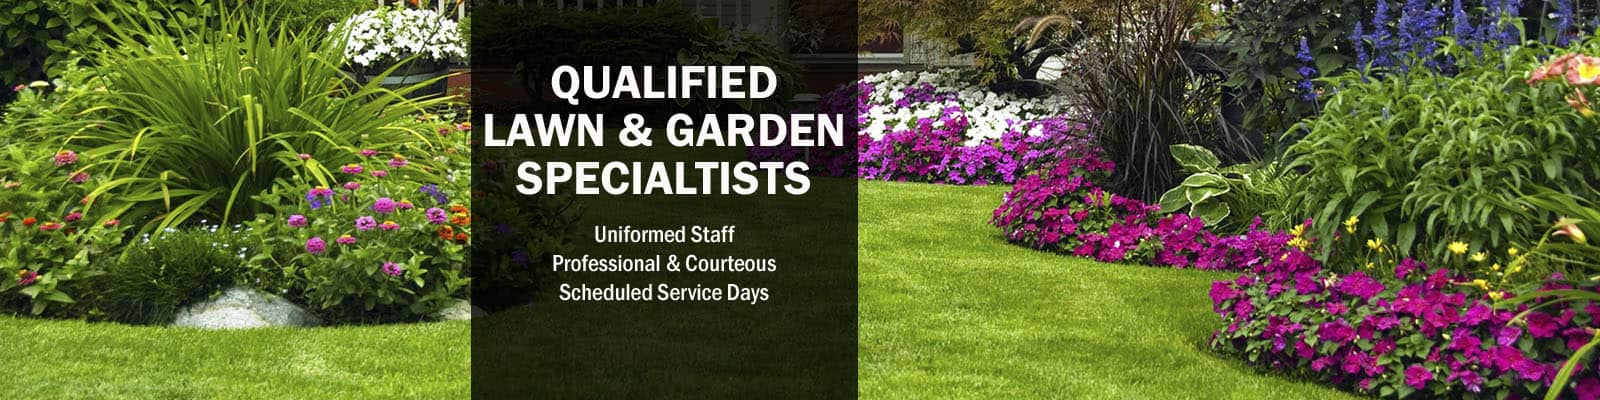 qualified lawn and garden specialists